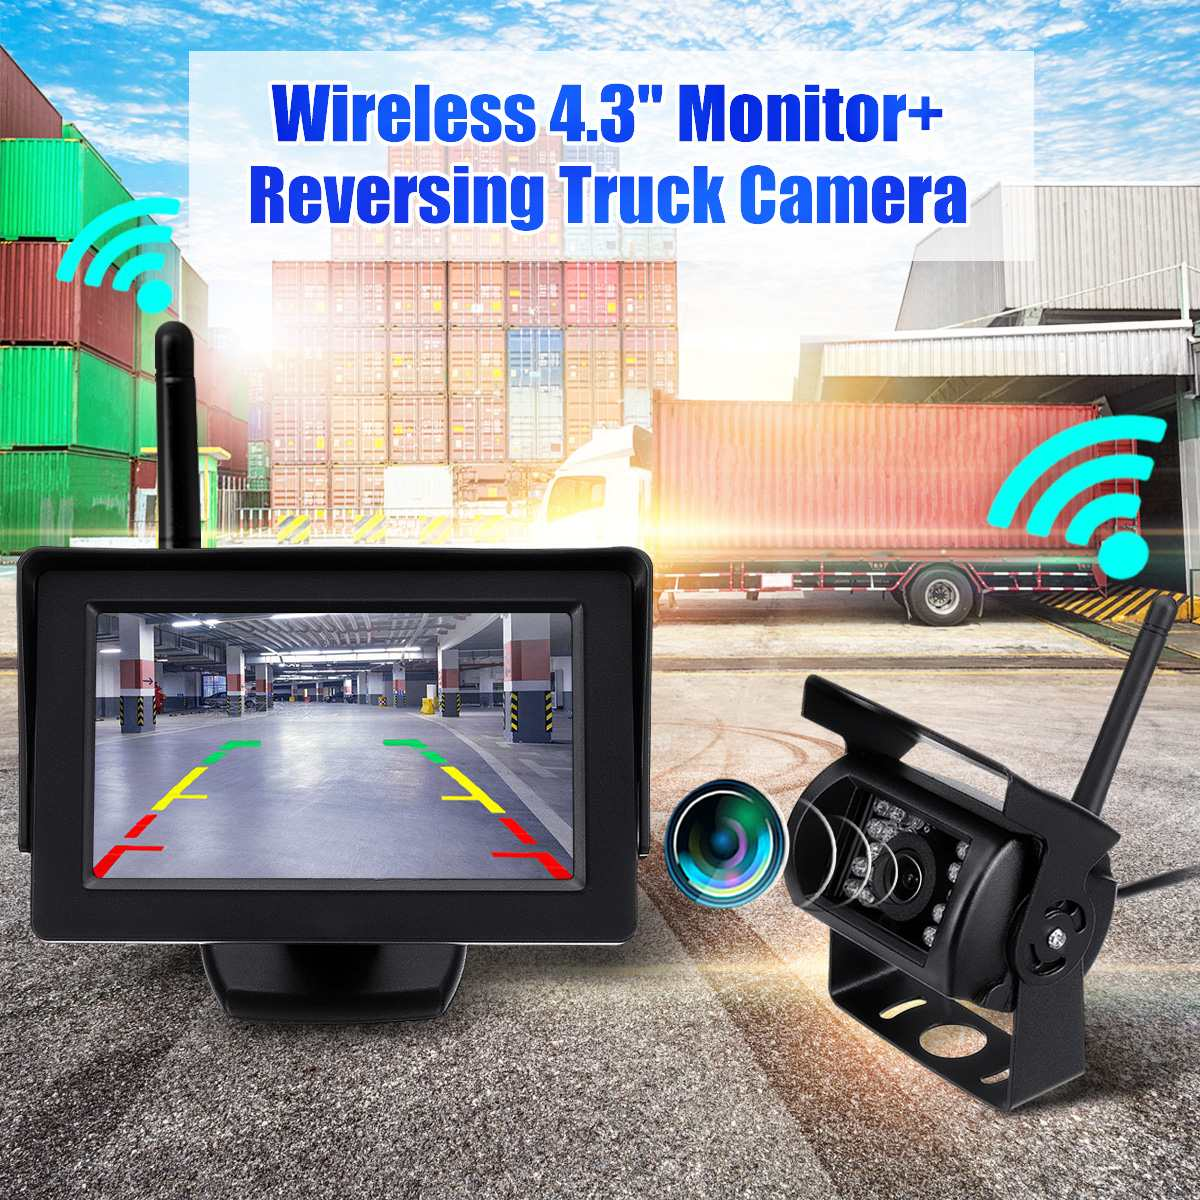 2.4G Car Vehicle HD Wireless Night Vision Rear View Backup Camera System With 4.3 Inch Monitor For 12-24V Truck Trailer